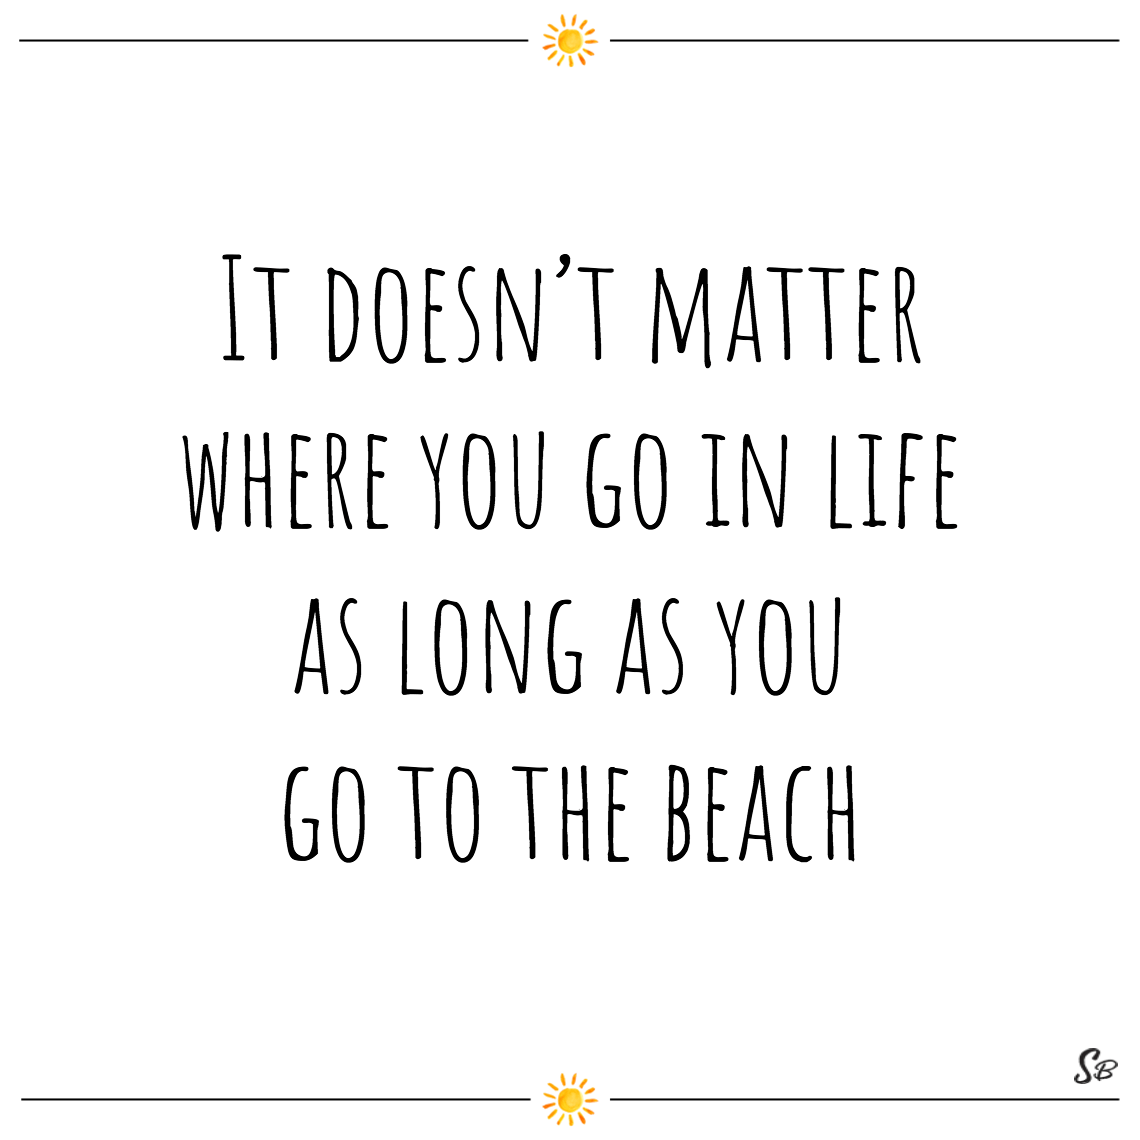 It doesn't matter where you go in life as long as you go to the beach